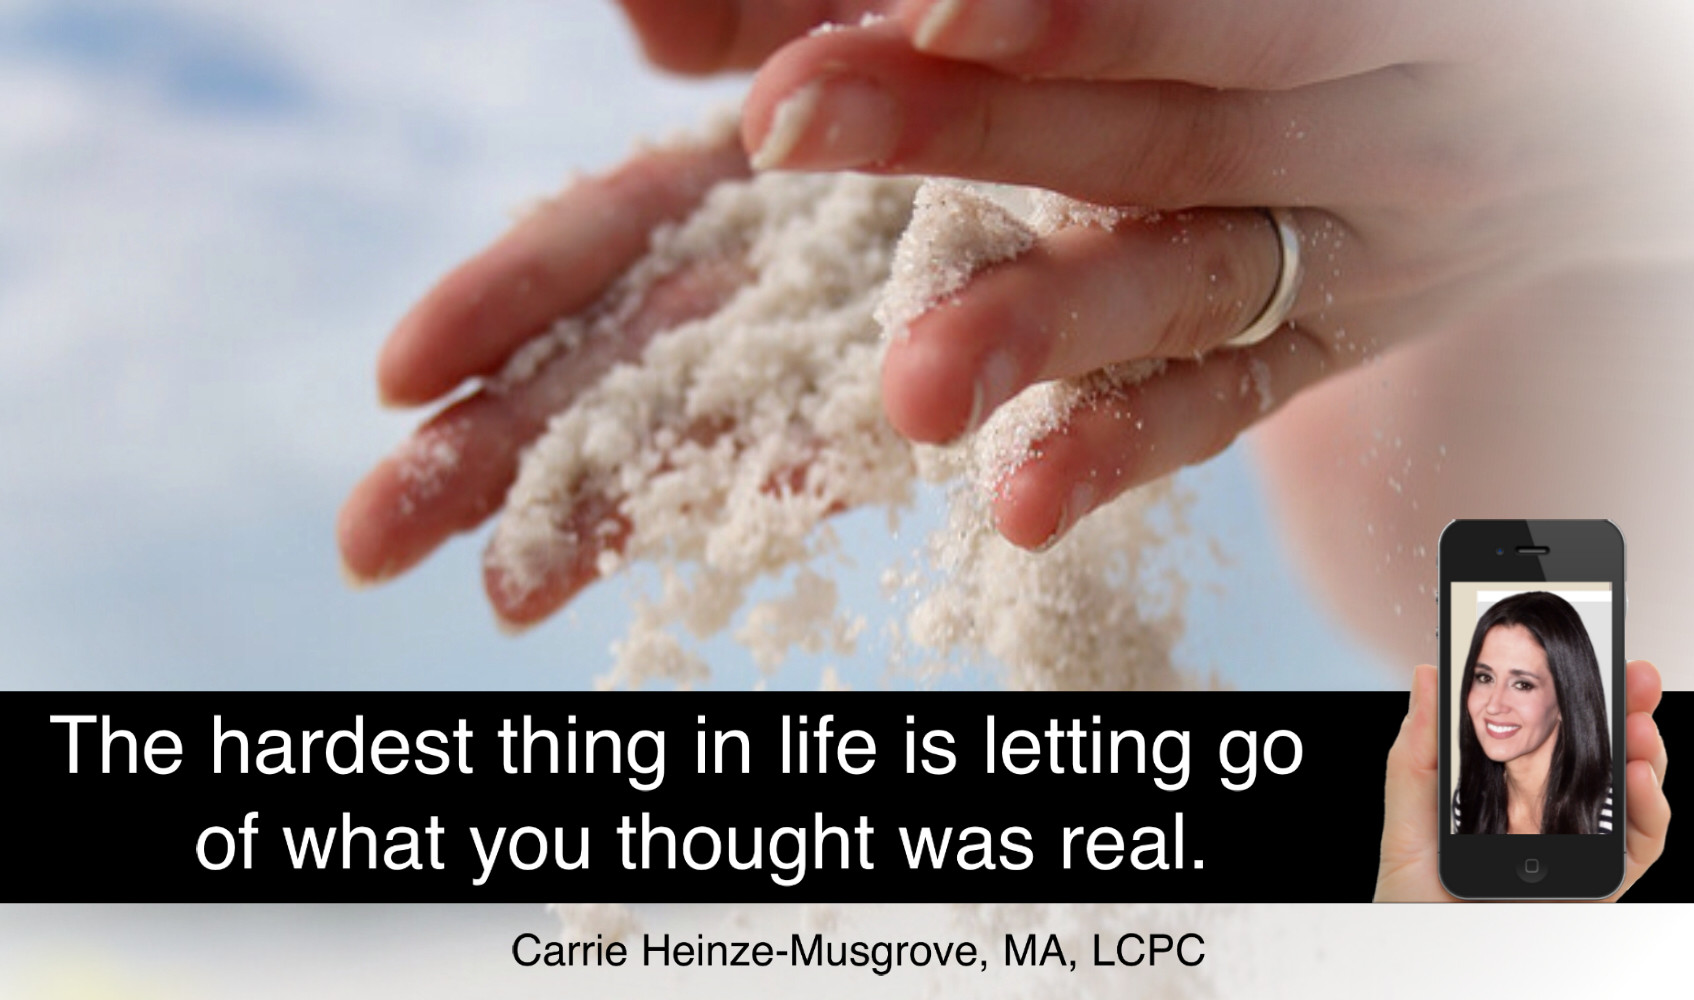 Letting go of what you thought was real.